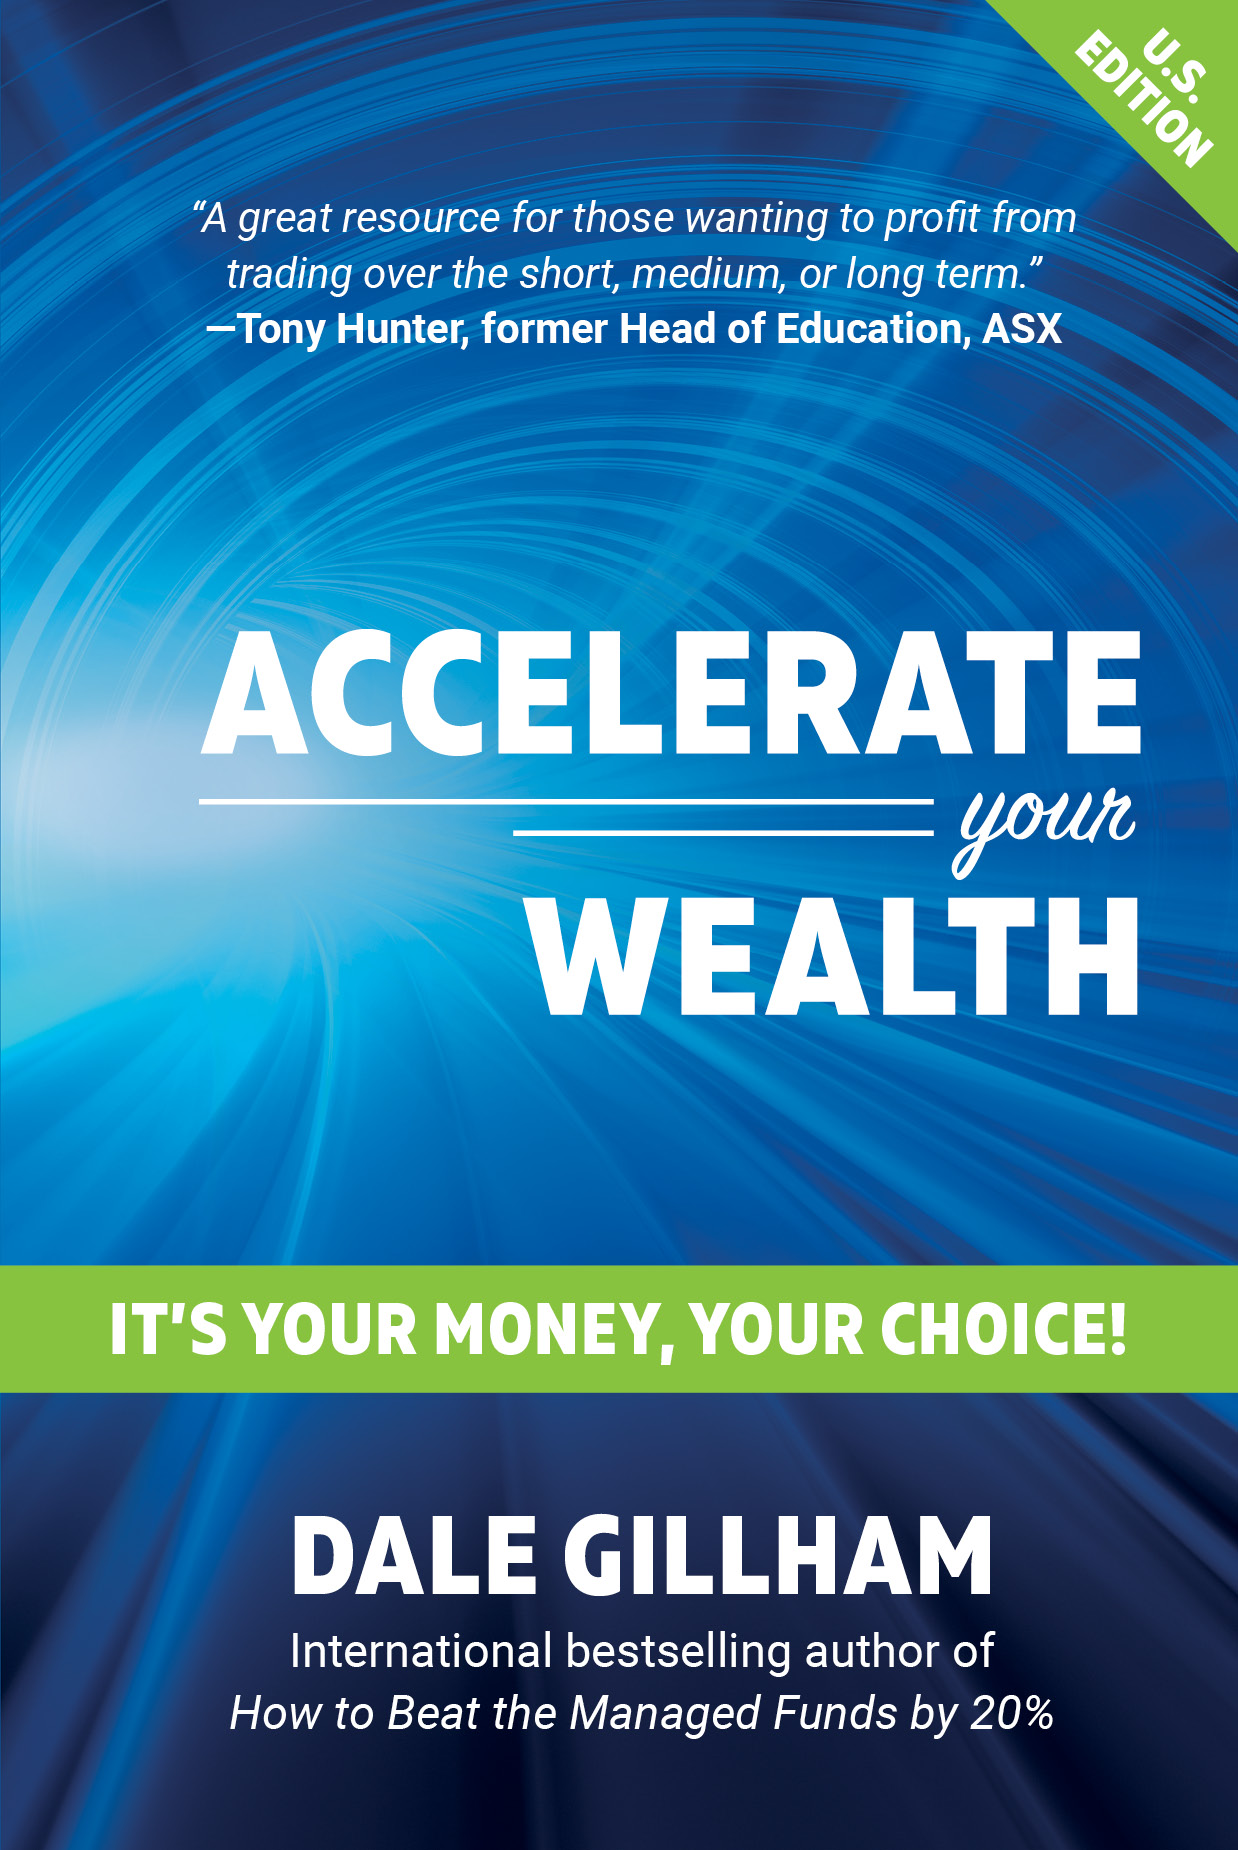 AccelerateYourWealth_cover_web